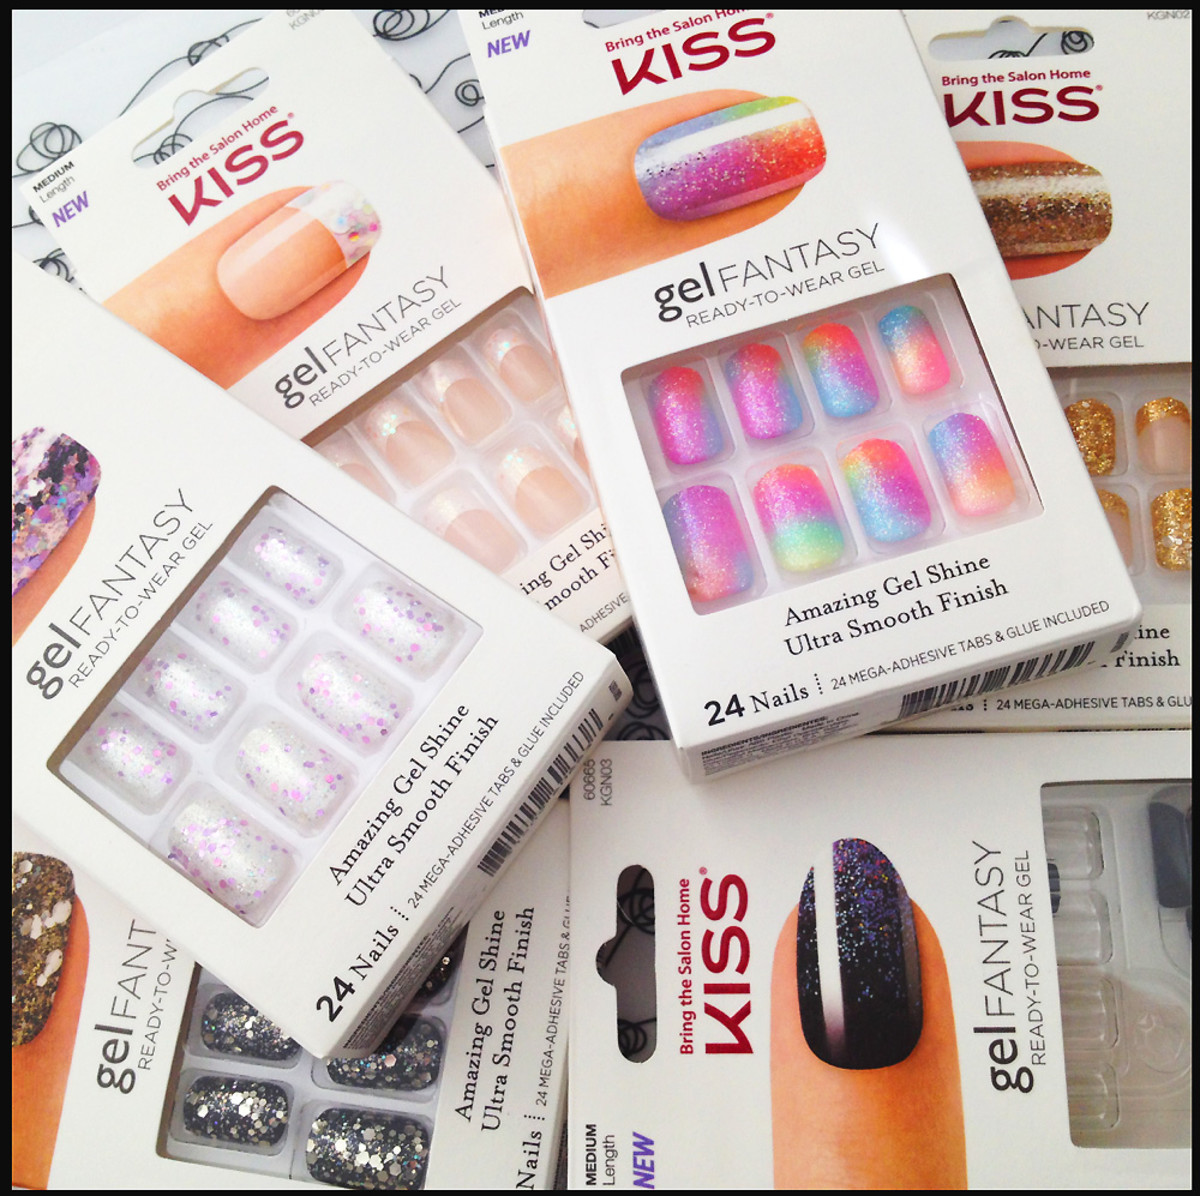 Kiss Gel Fantasy Ready-to-Wear Gel nail kits